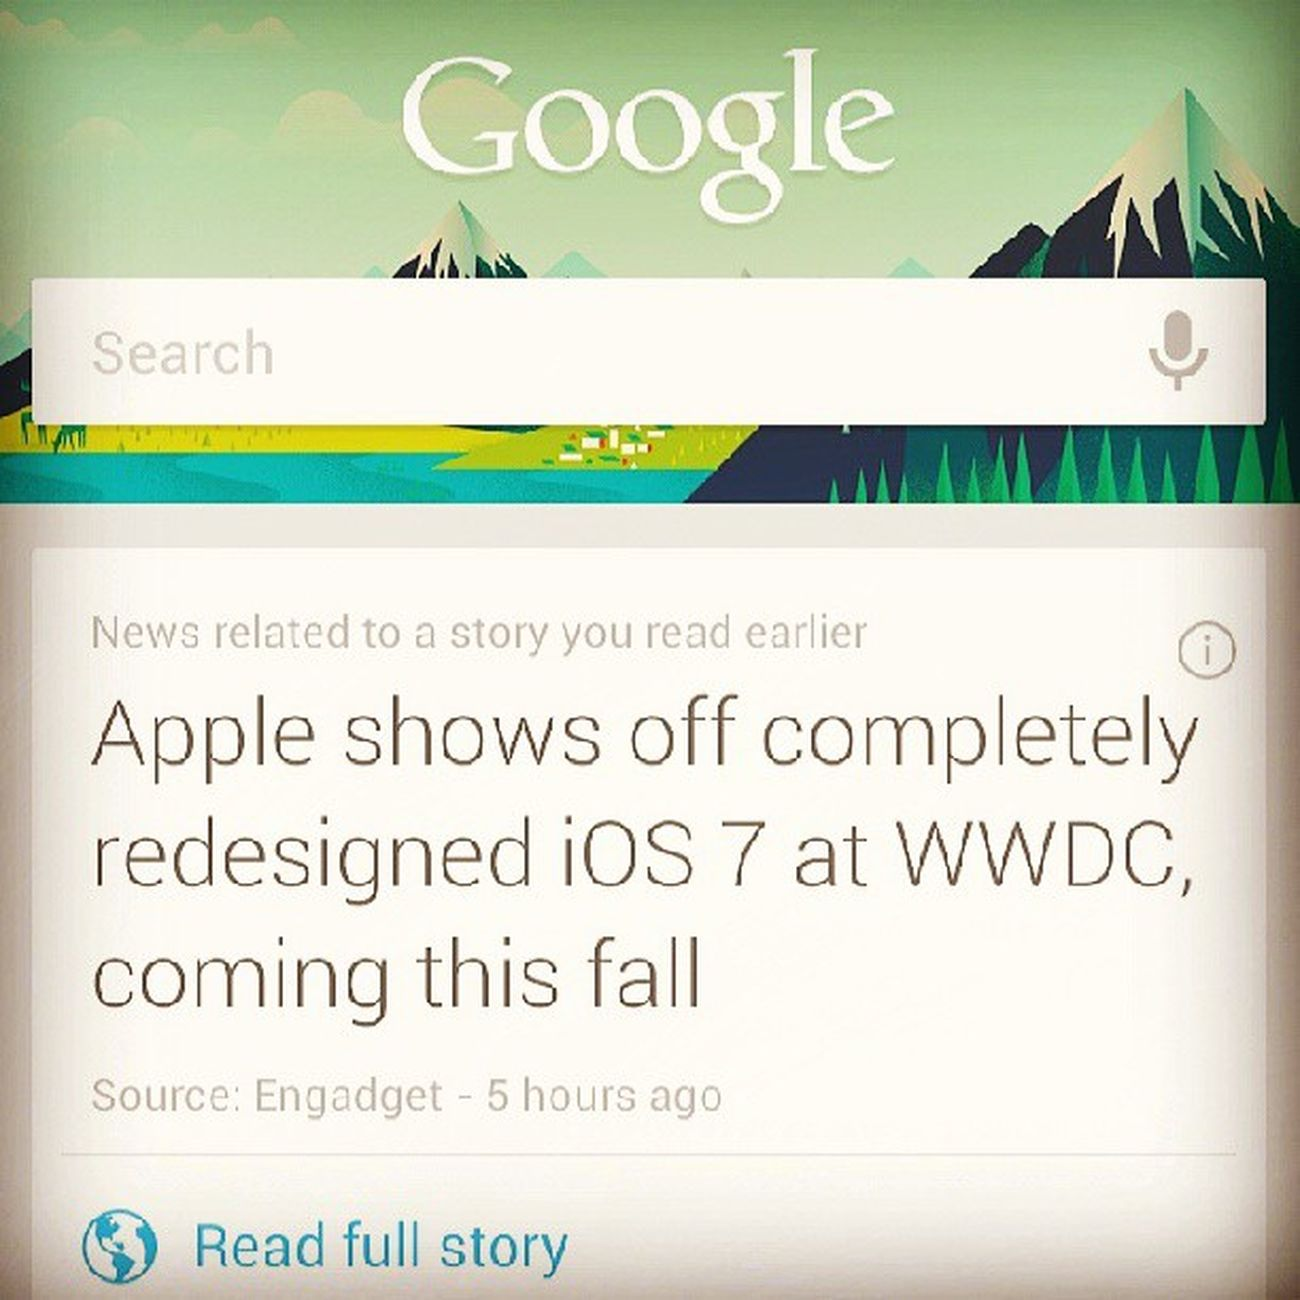 Apple Google WWDC Instapic instadaily instagood instacool instagrammer googlenow like love ios7